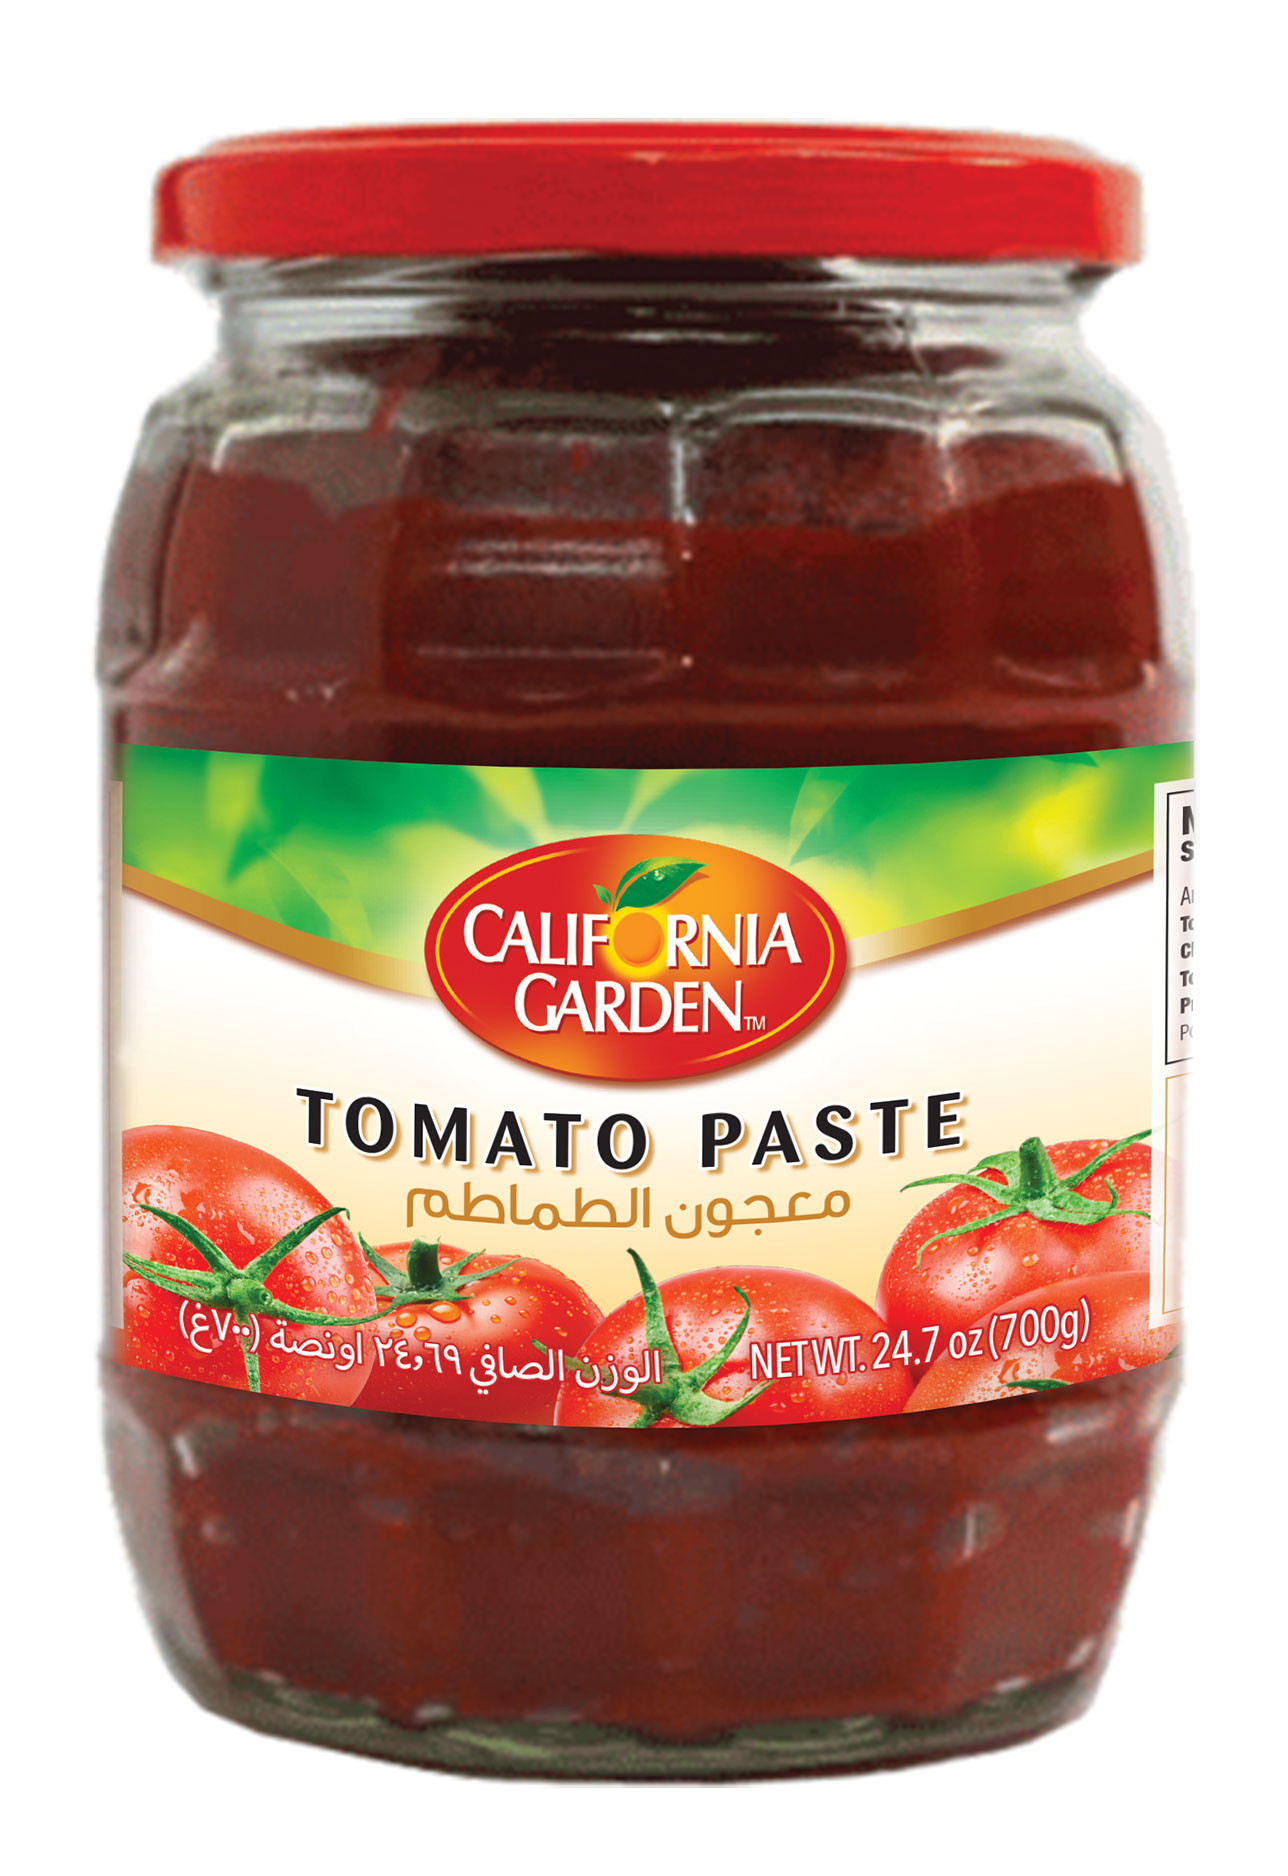 Tomato Sauce From Paste  20 Best tomato Sauce From Paste Best Recipes Ever